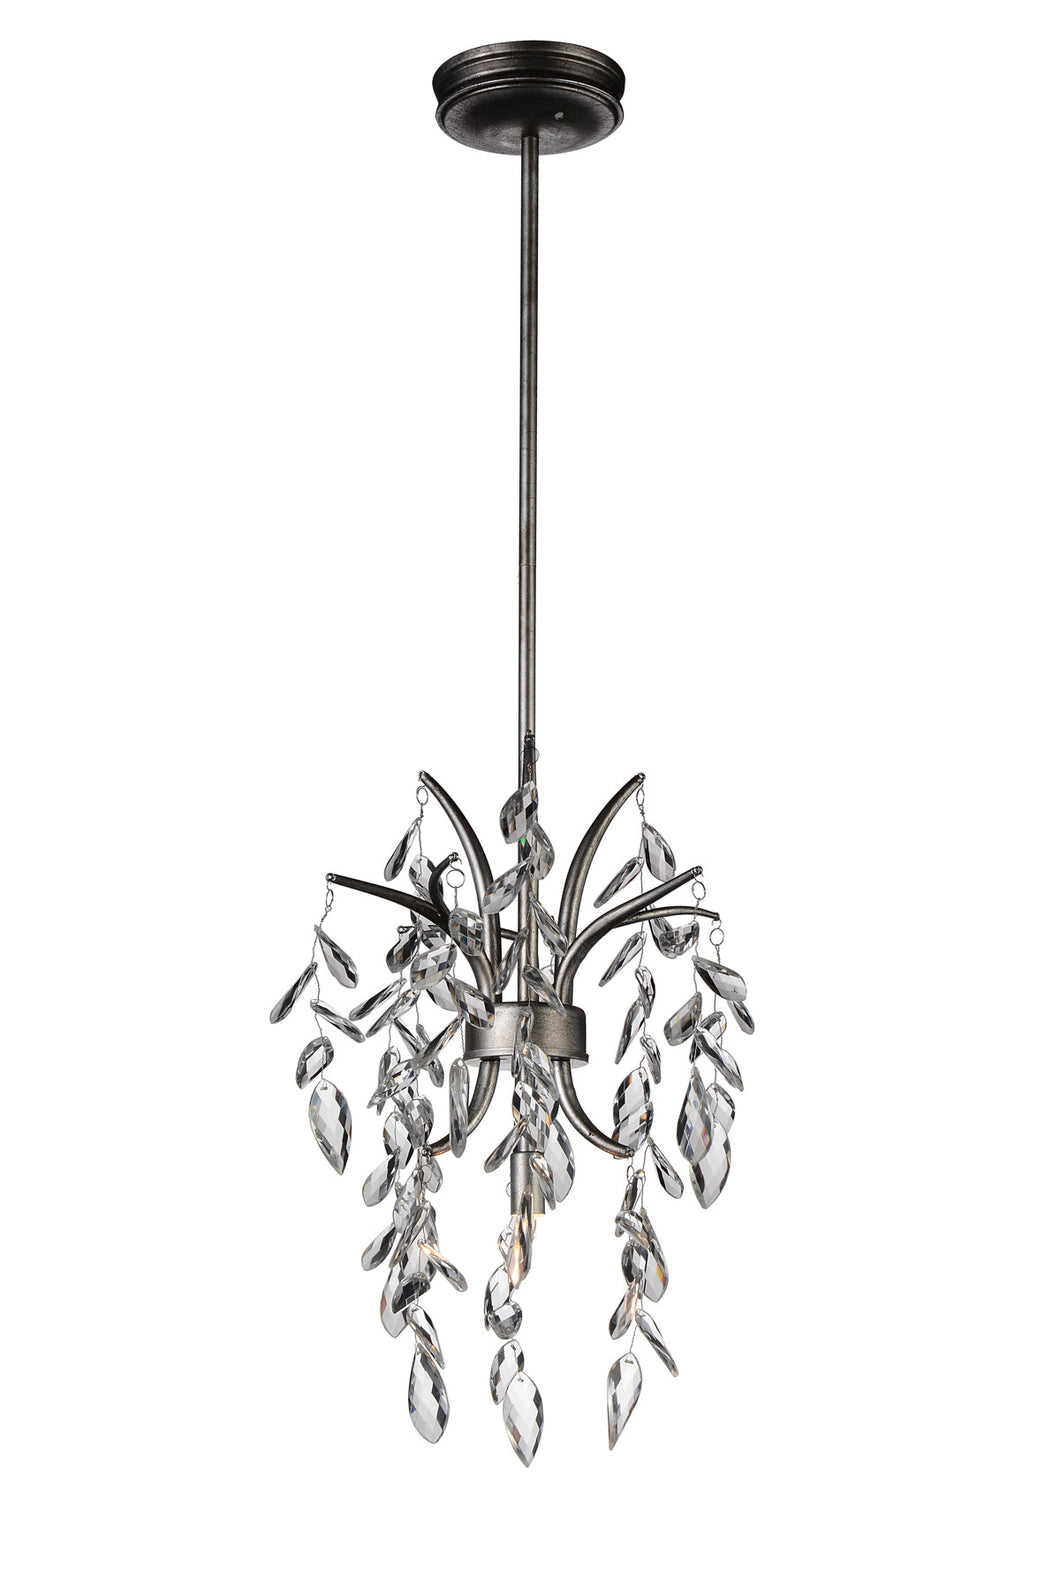 1 Light Down Mini Chandelier with Silver Mist finish